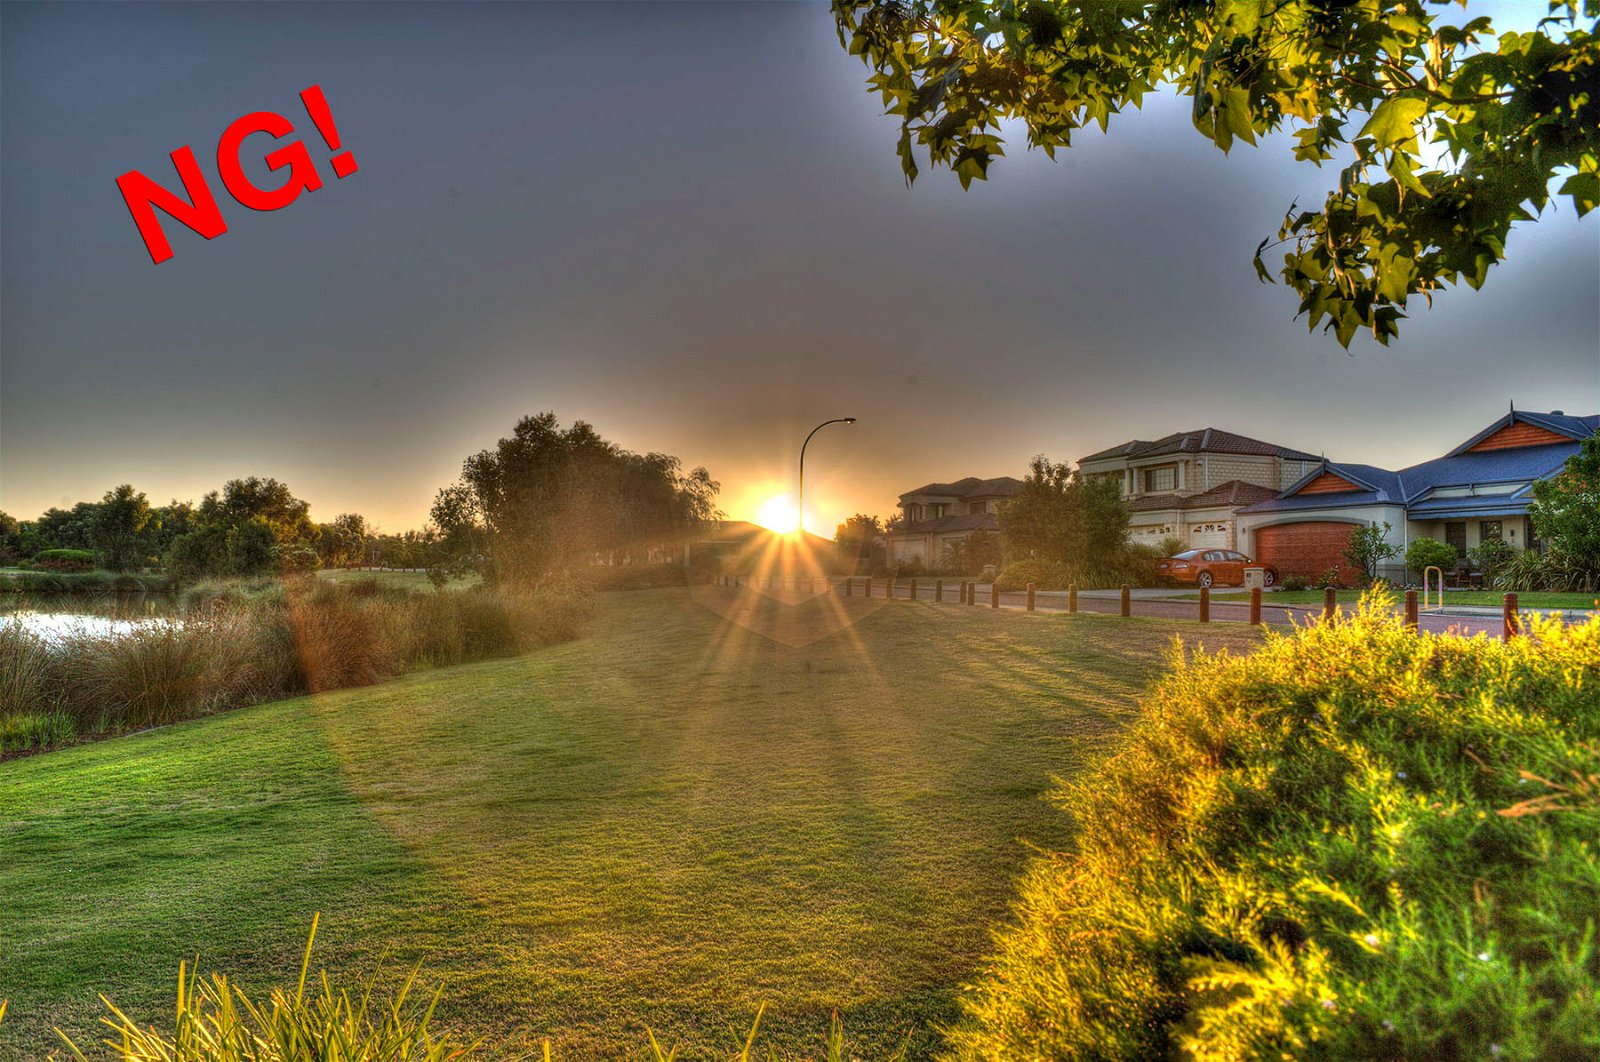 A bad example of an image processed with HDR software